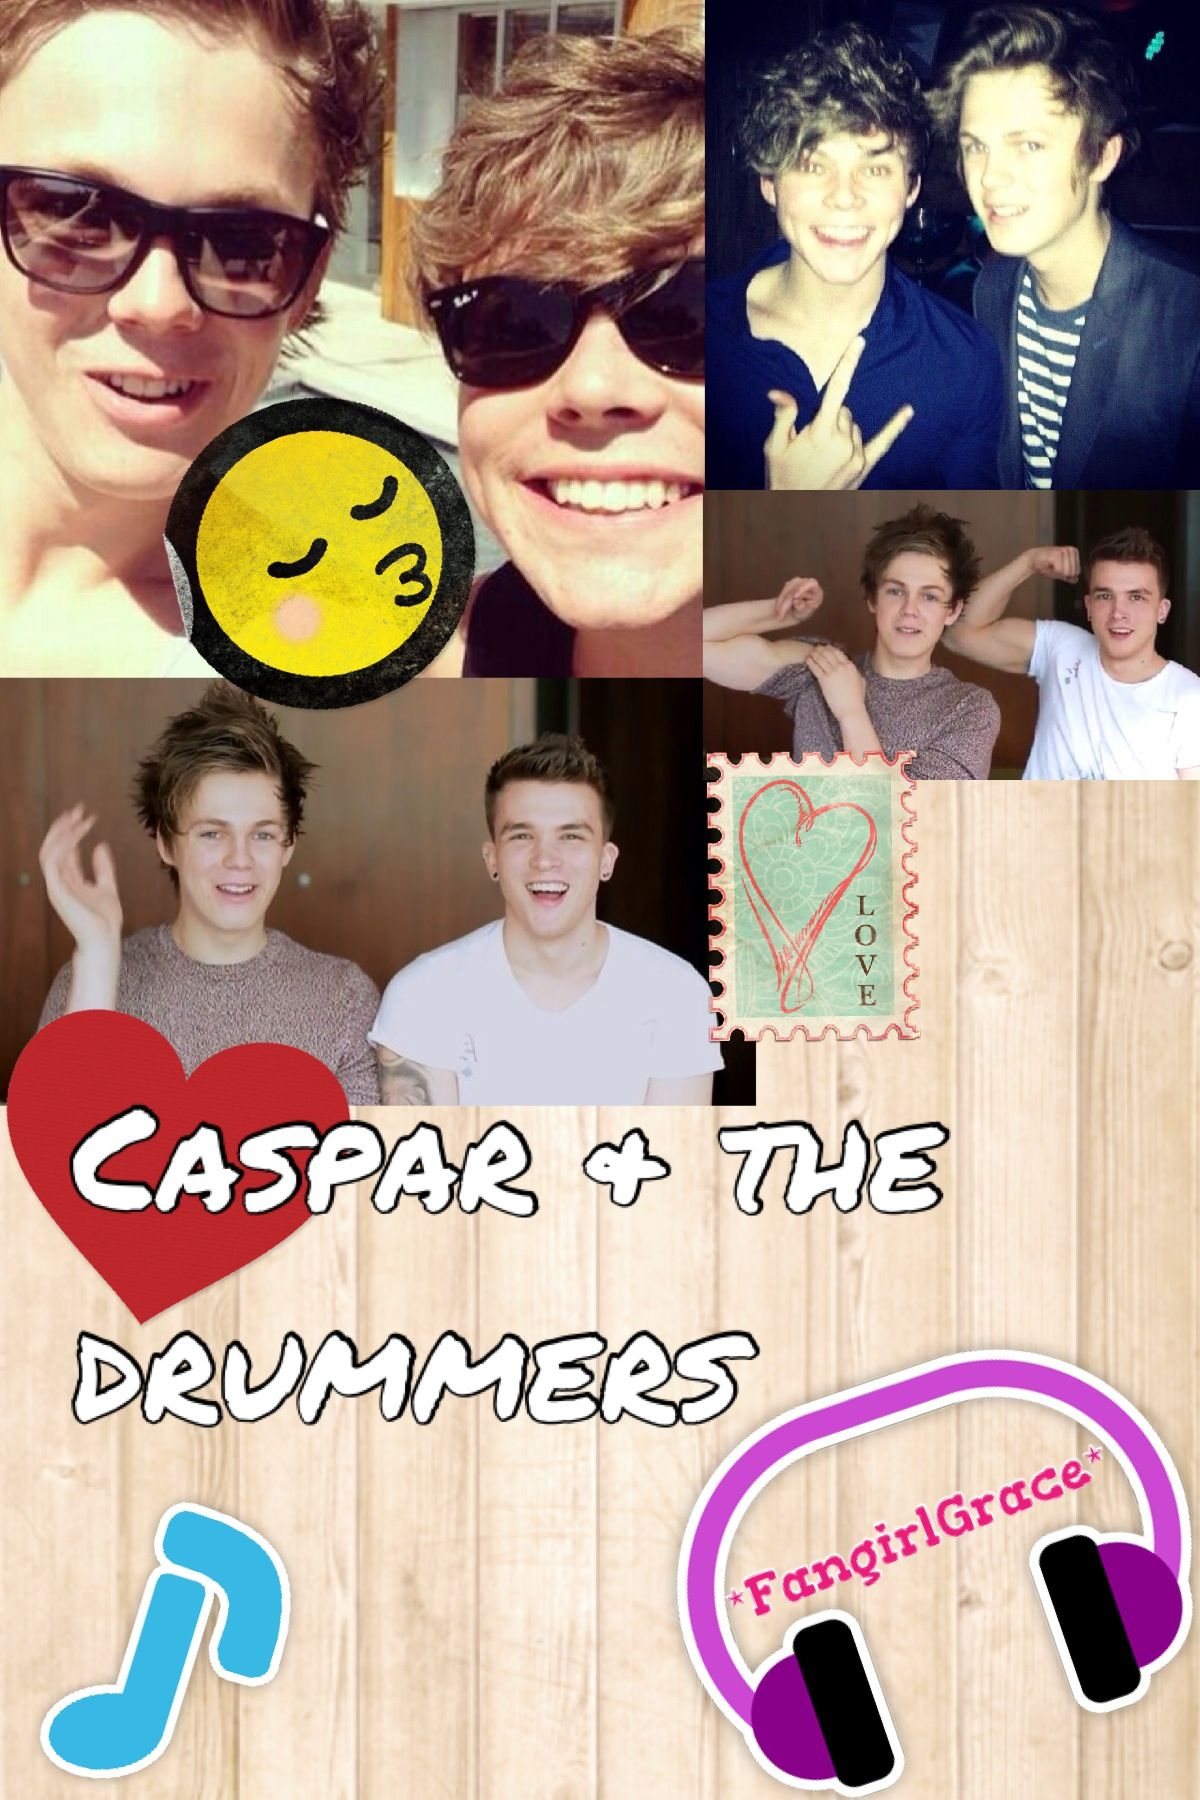 I Think Hes Into Drummers Haha Idk I Just Made This Lol Xxgrace Caspar Lee Josh Devine One Direction Ashton Irwin 5sos